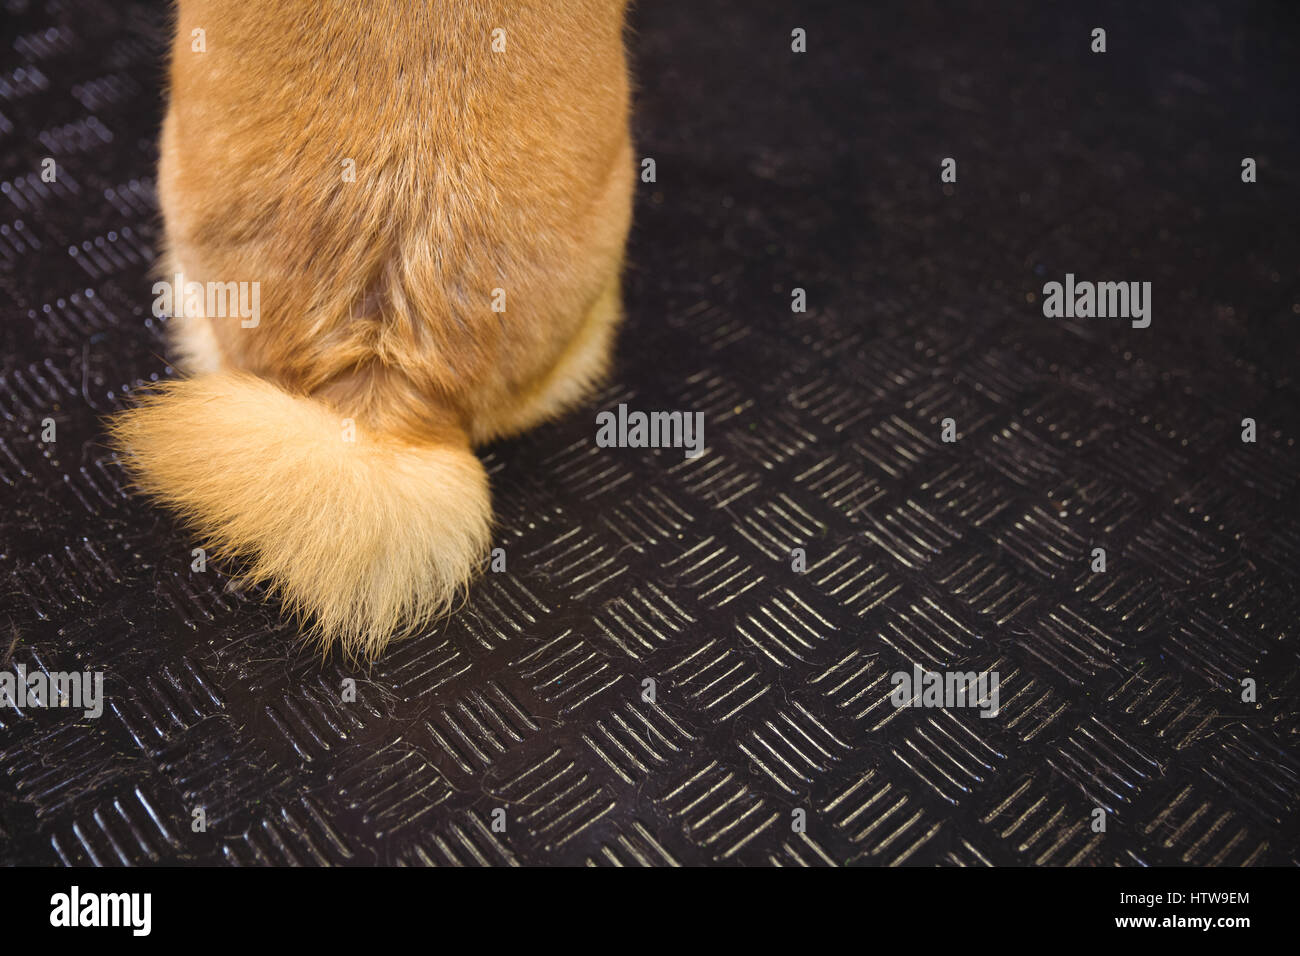 Tail of shiba inu puppy - Stock Image